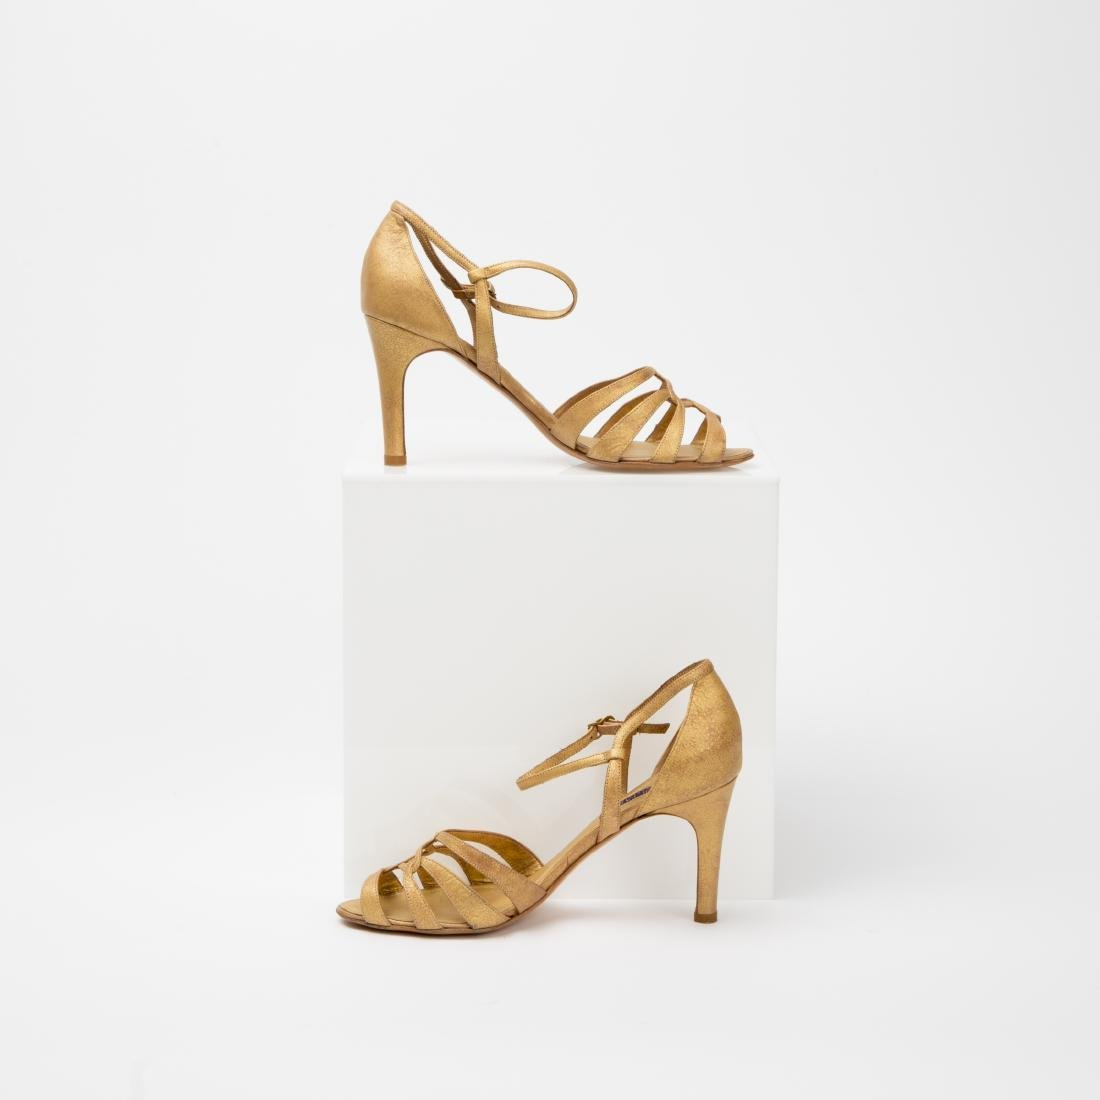 TWO PAIRS OF RALPH LAUREN SANDALS SIZES 9, 9.5 - 8